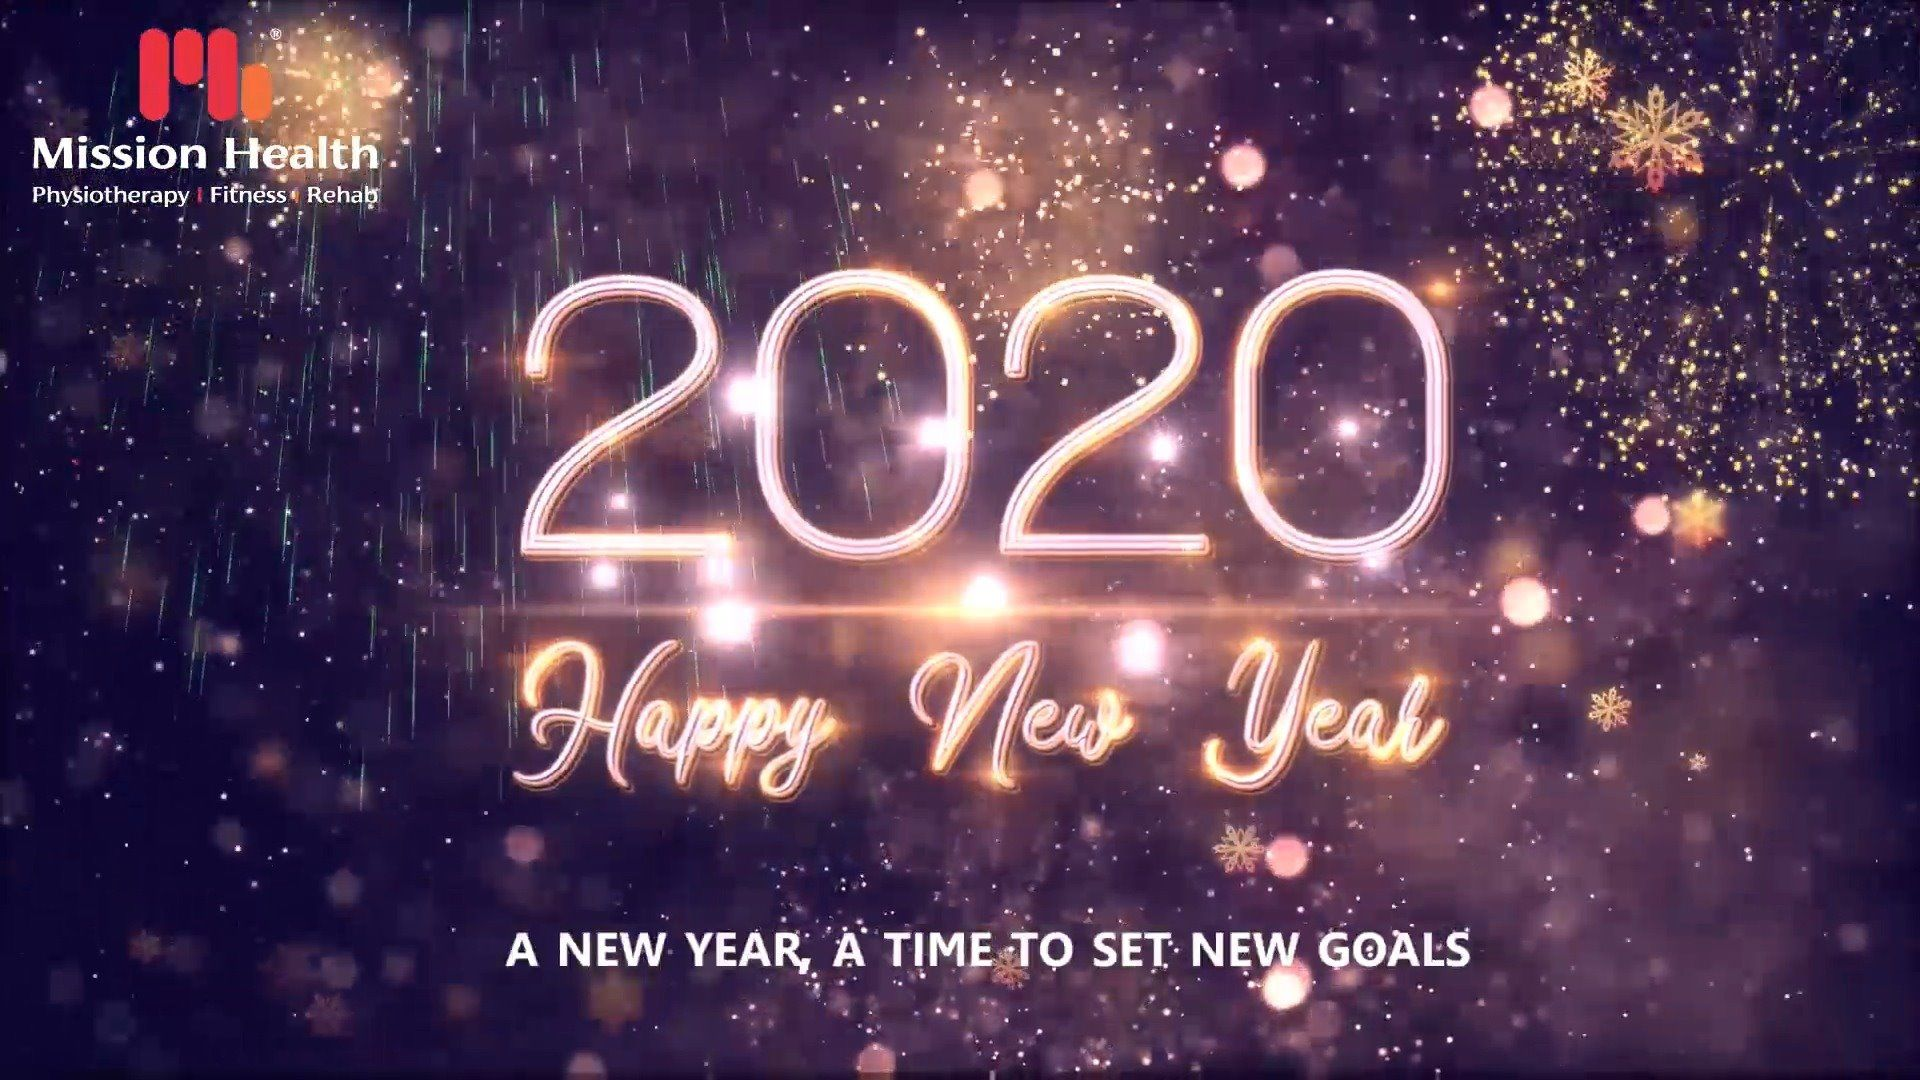 A Happy New Year to all our Patrons. May year 2020 be a Joyful Journey of Health Wealth & Happiness  #NewYear2020 #HappyNewYear #NewYear #Happiness #Joy #2k20 #Celebration #MissionHealth #MissionHealthIndia #MovementIsLife